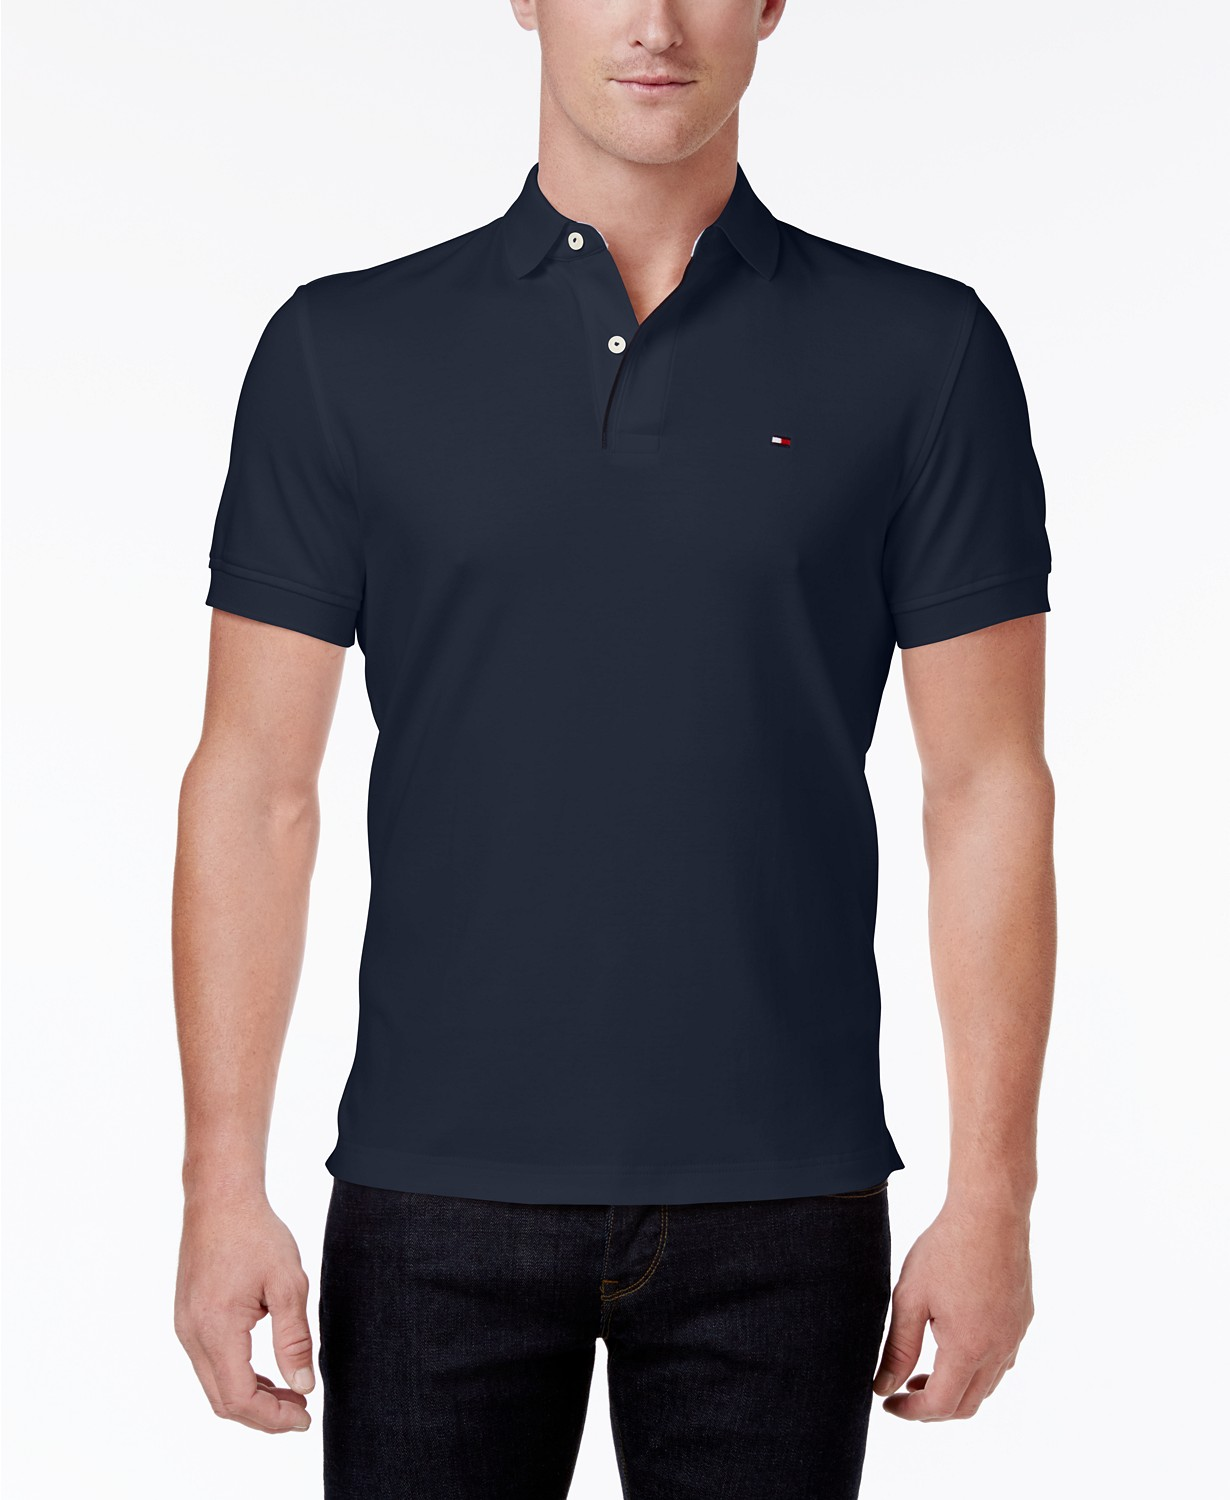 Tommy Hilfiger Men's Paul Cotton Classic Fit Polo